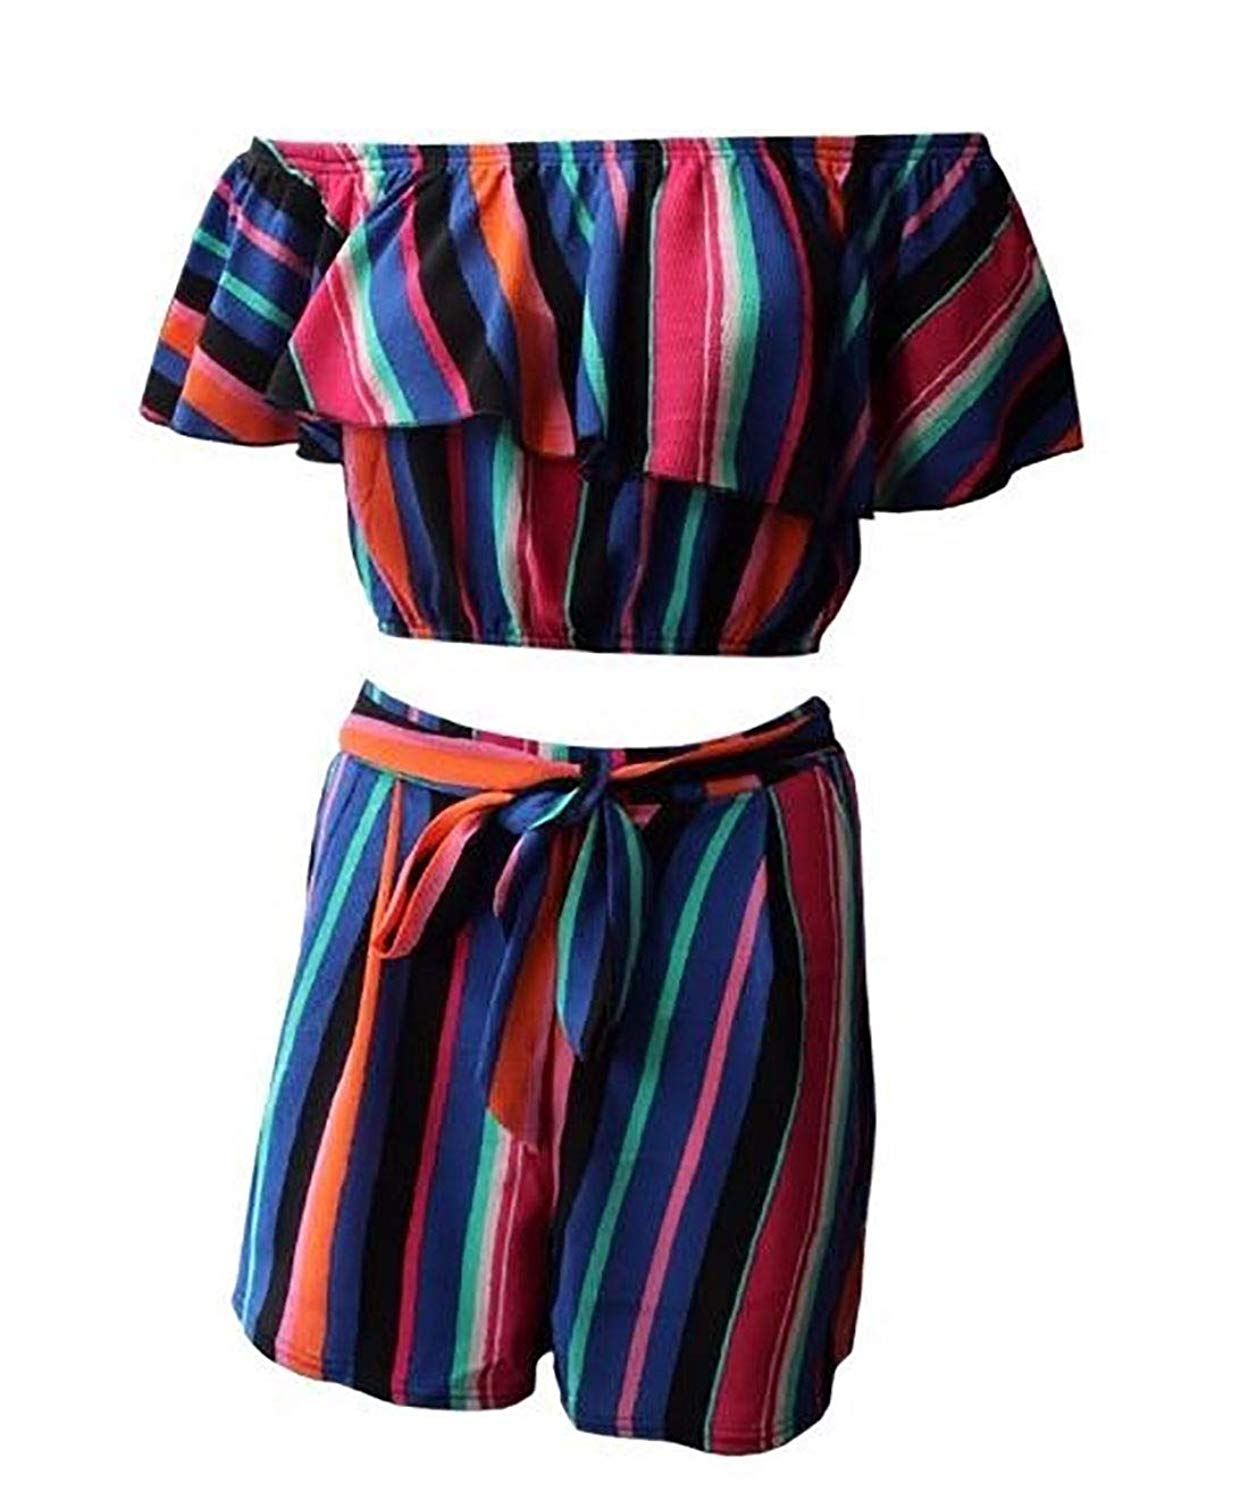 7f11b0fad42ed Get Quotations · Womens Fancy Striped Printed Club Wear Frill Crop Top  Ladies Belted Sexy Shorts Set